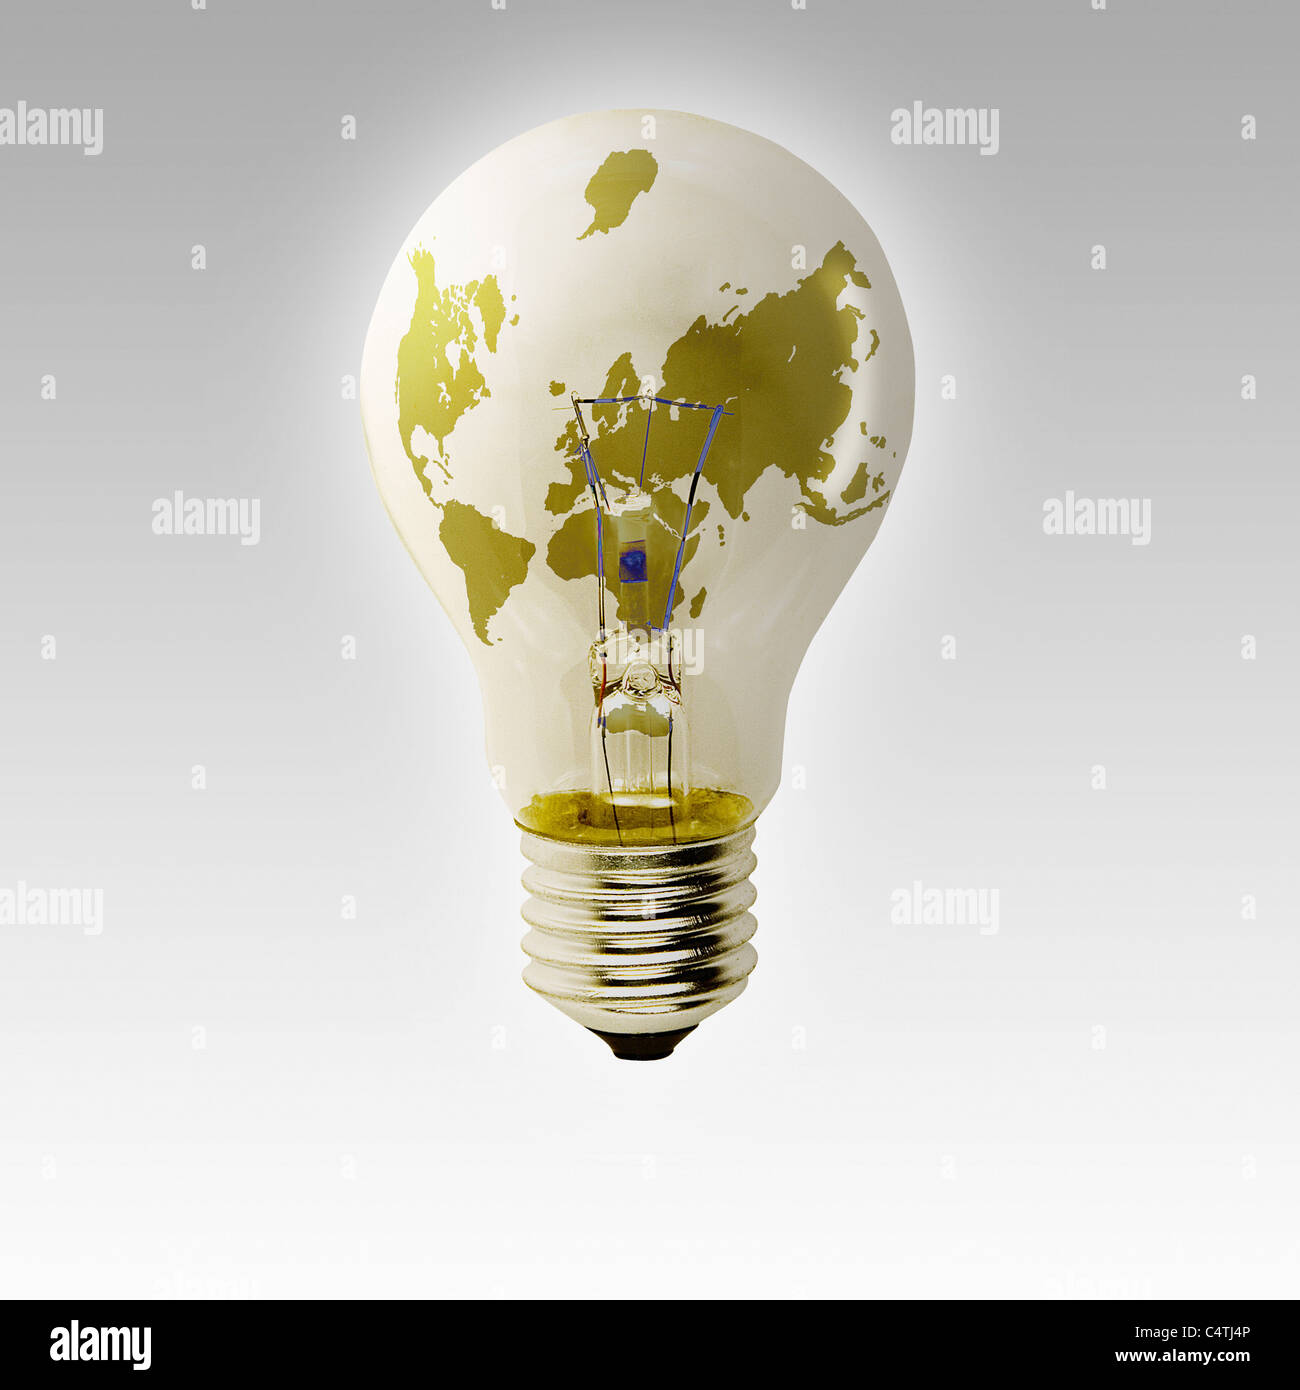 World map on light bulb - Stock Image